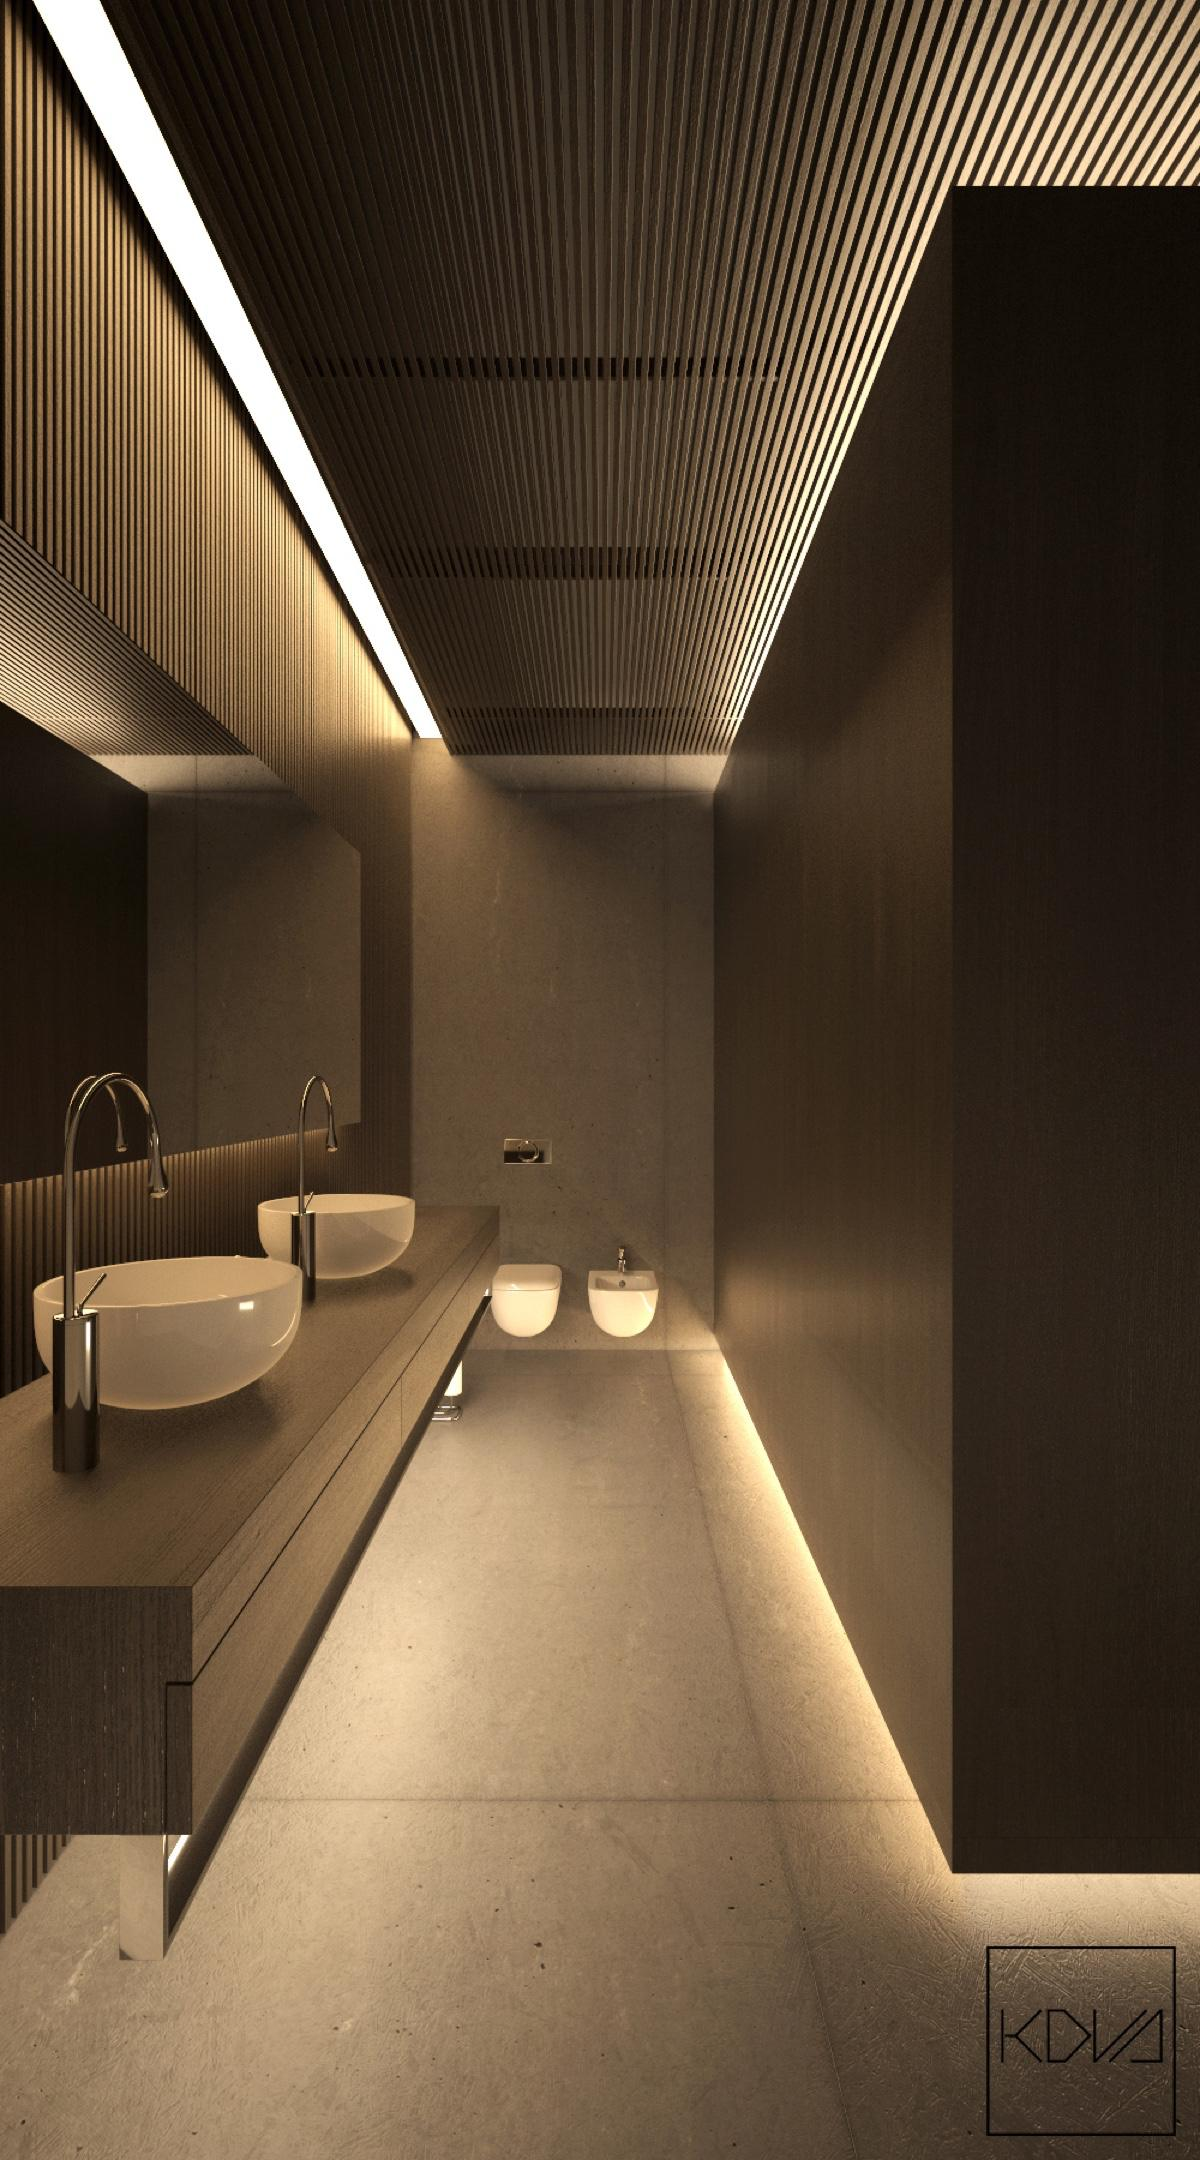 House design lighting - House Design Lighting 26